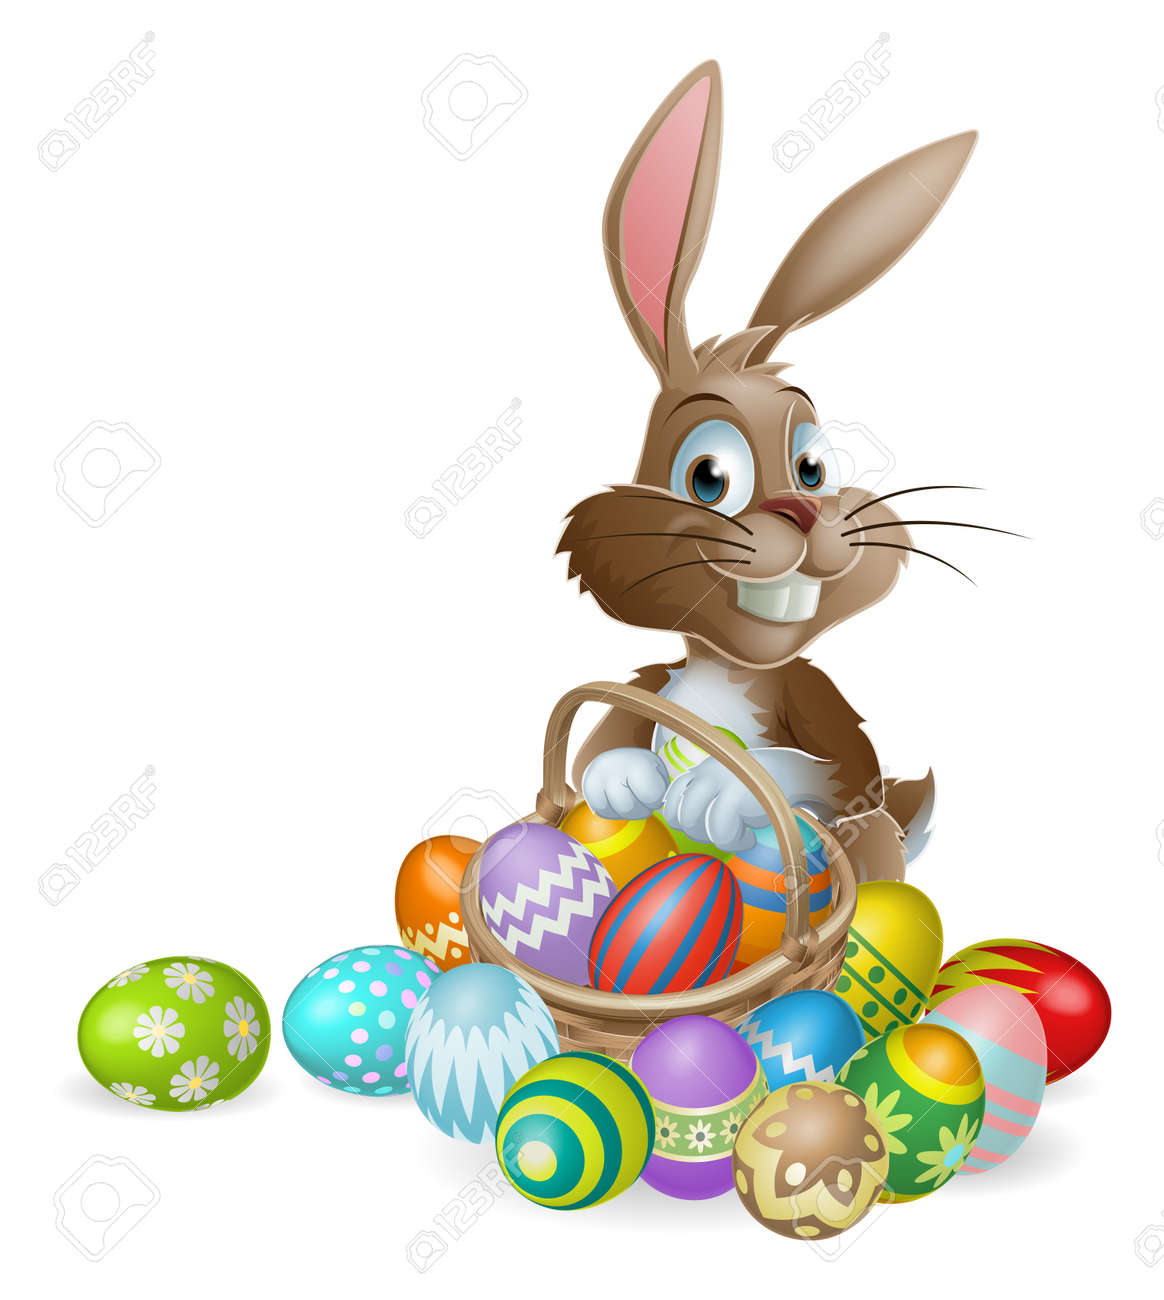 Easter bunny rabbit with Easter basket full of decorated Easter eggs Stock Vector - 17477062